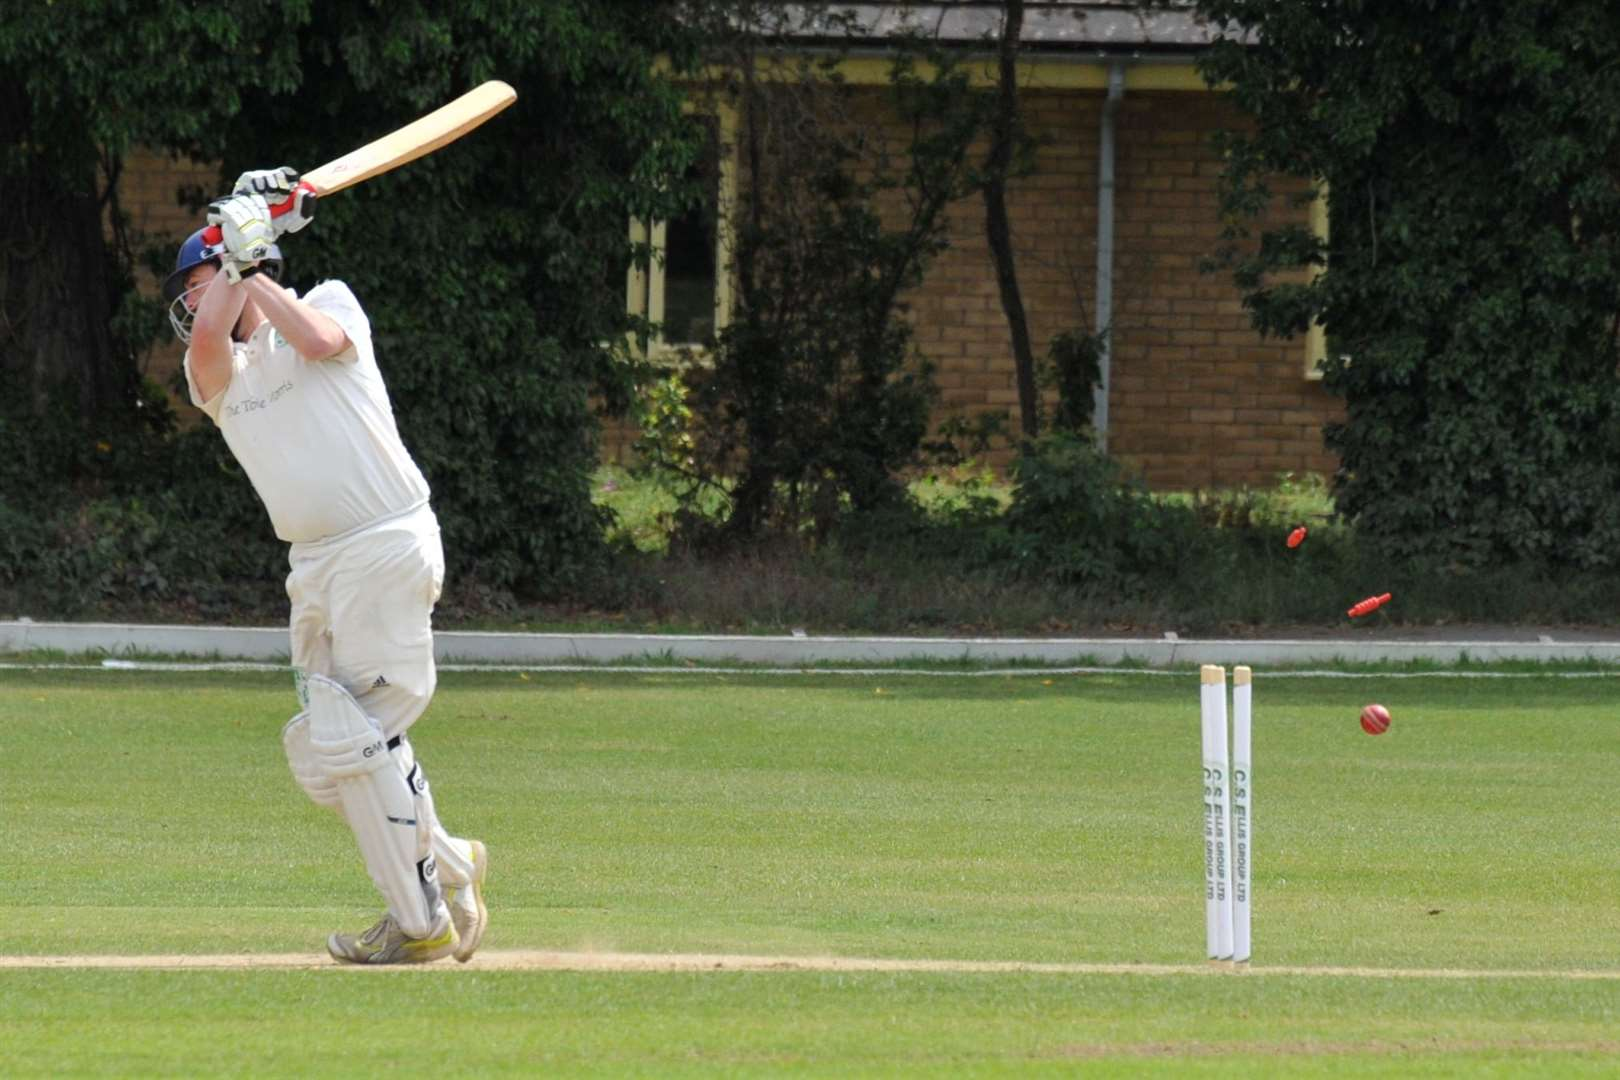 Ketton Sports 2nds stayed top of Division Four West after victory over Uffington 2nds. Photos: Alan Walters (13581331)